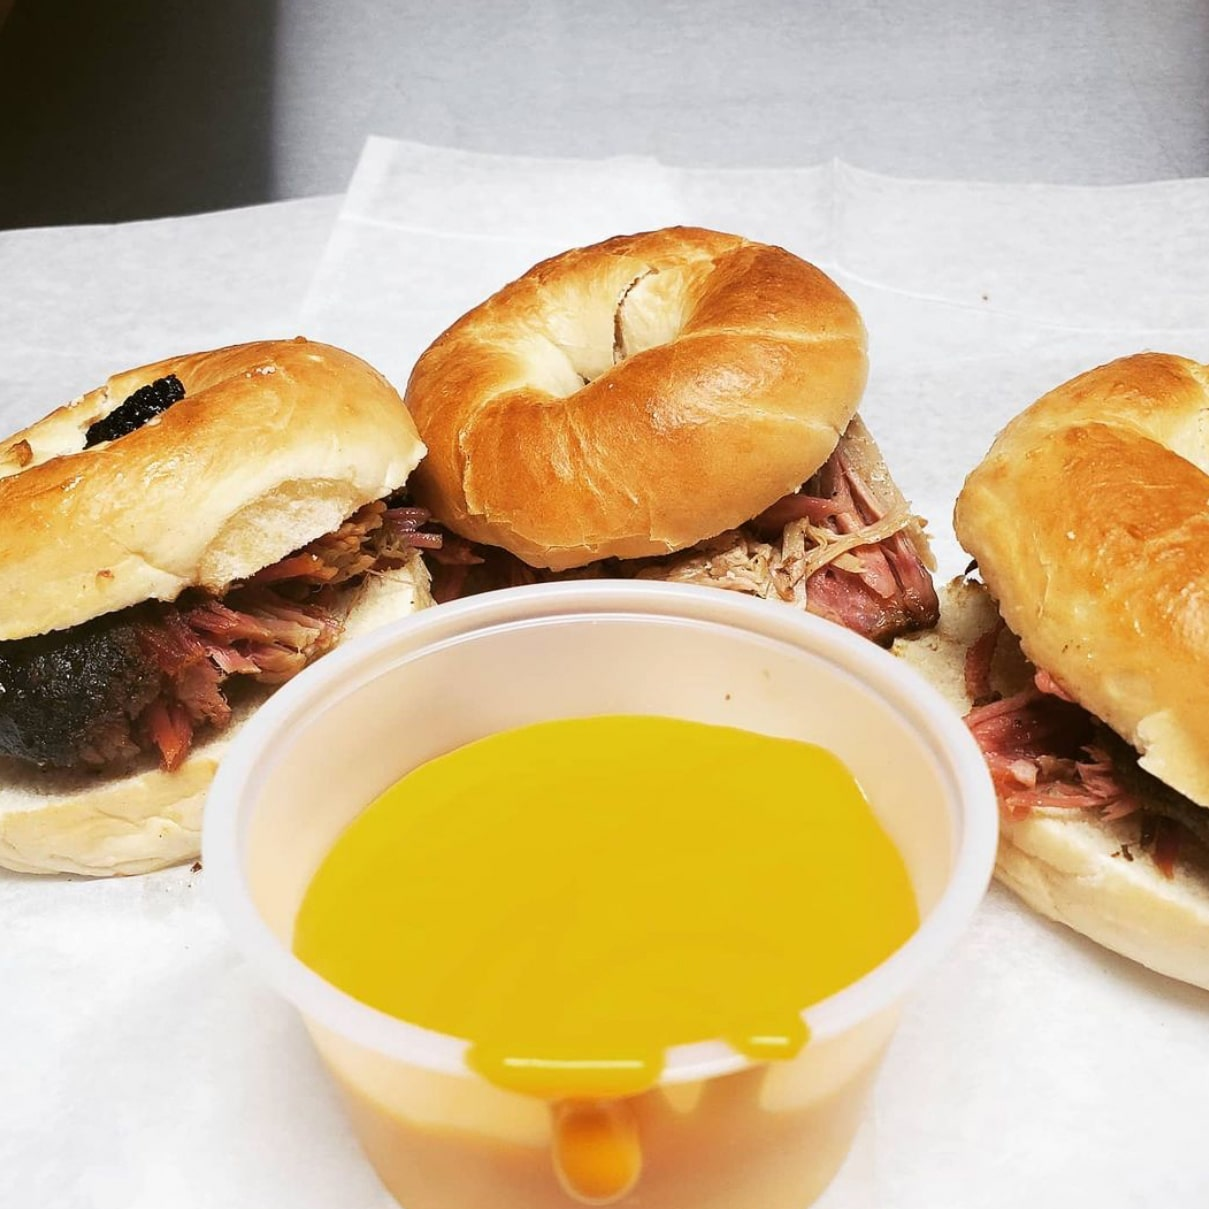 Mini Bagel Sliders with pulled pork and a side of hot cheese